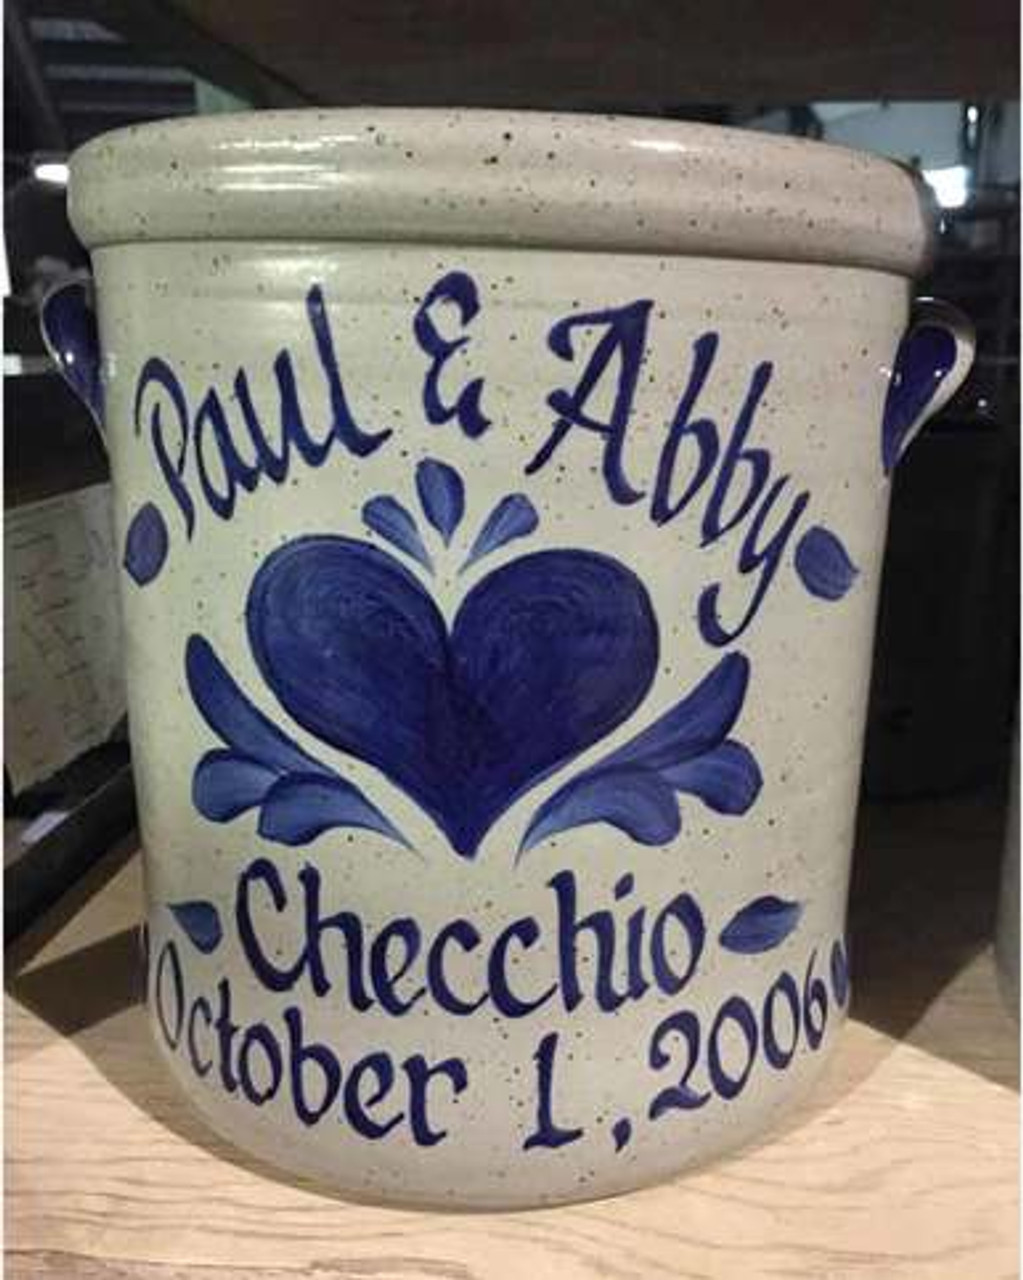 Rowe Pottery Personalized Heart Crock available on WisconsinMade Artisan Collective